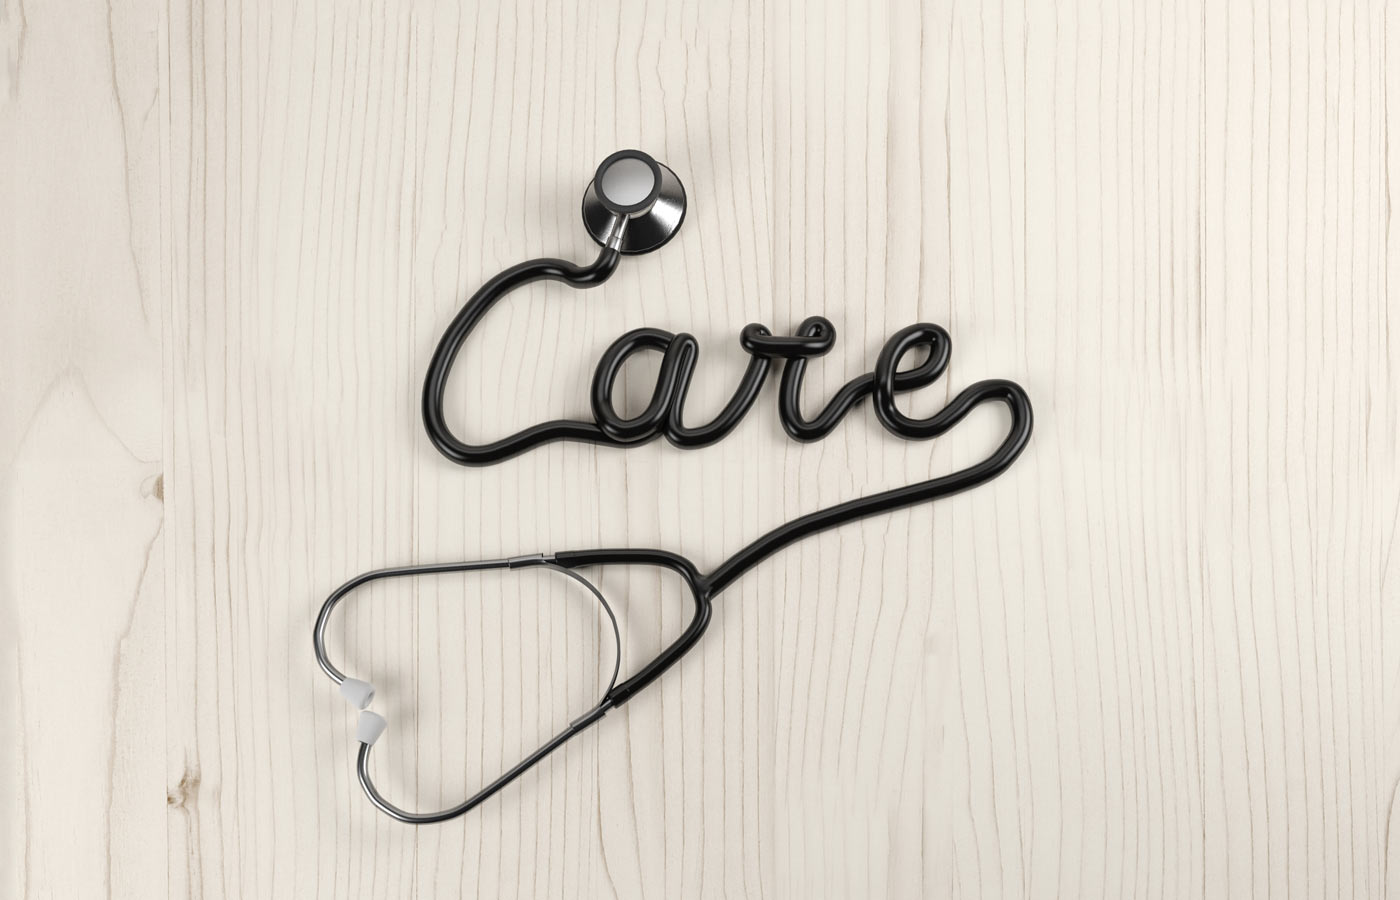 3DLETTERING CESS 3D 3DTYPE LETTERING CGI 3DARTIST MEDICAL CARE HOSPITAL